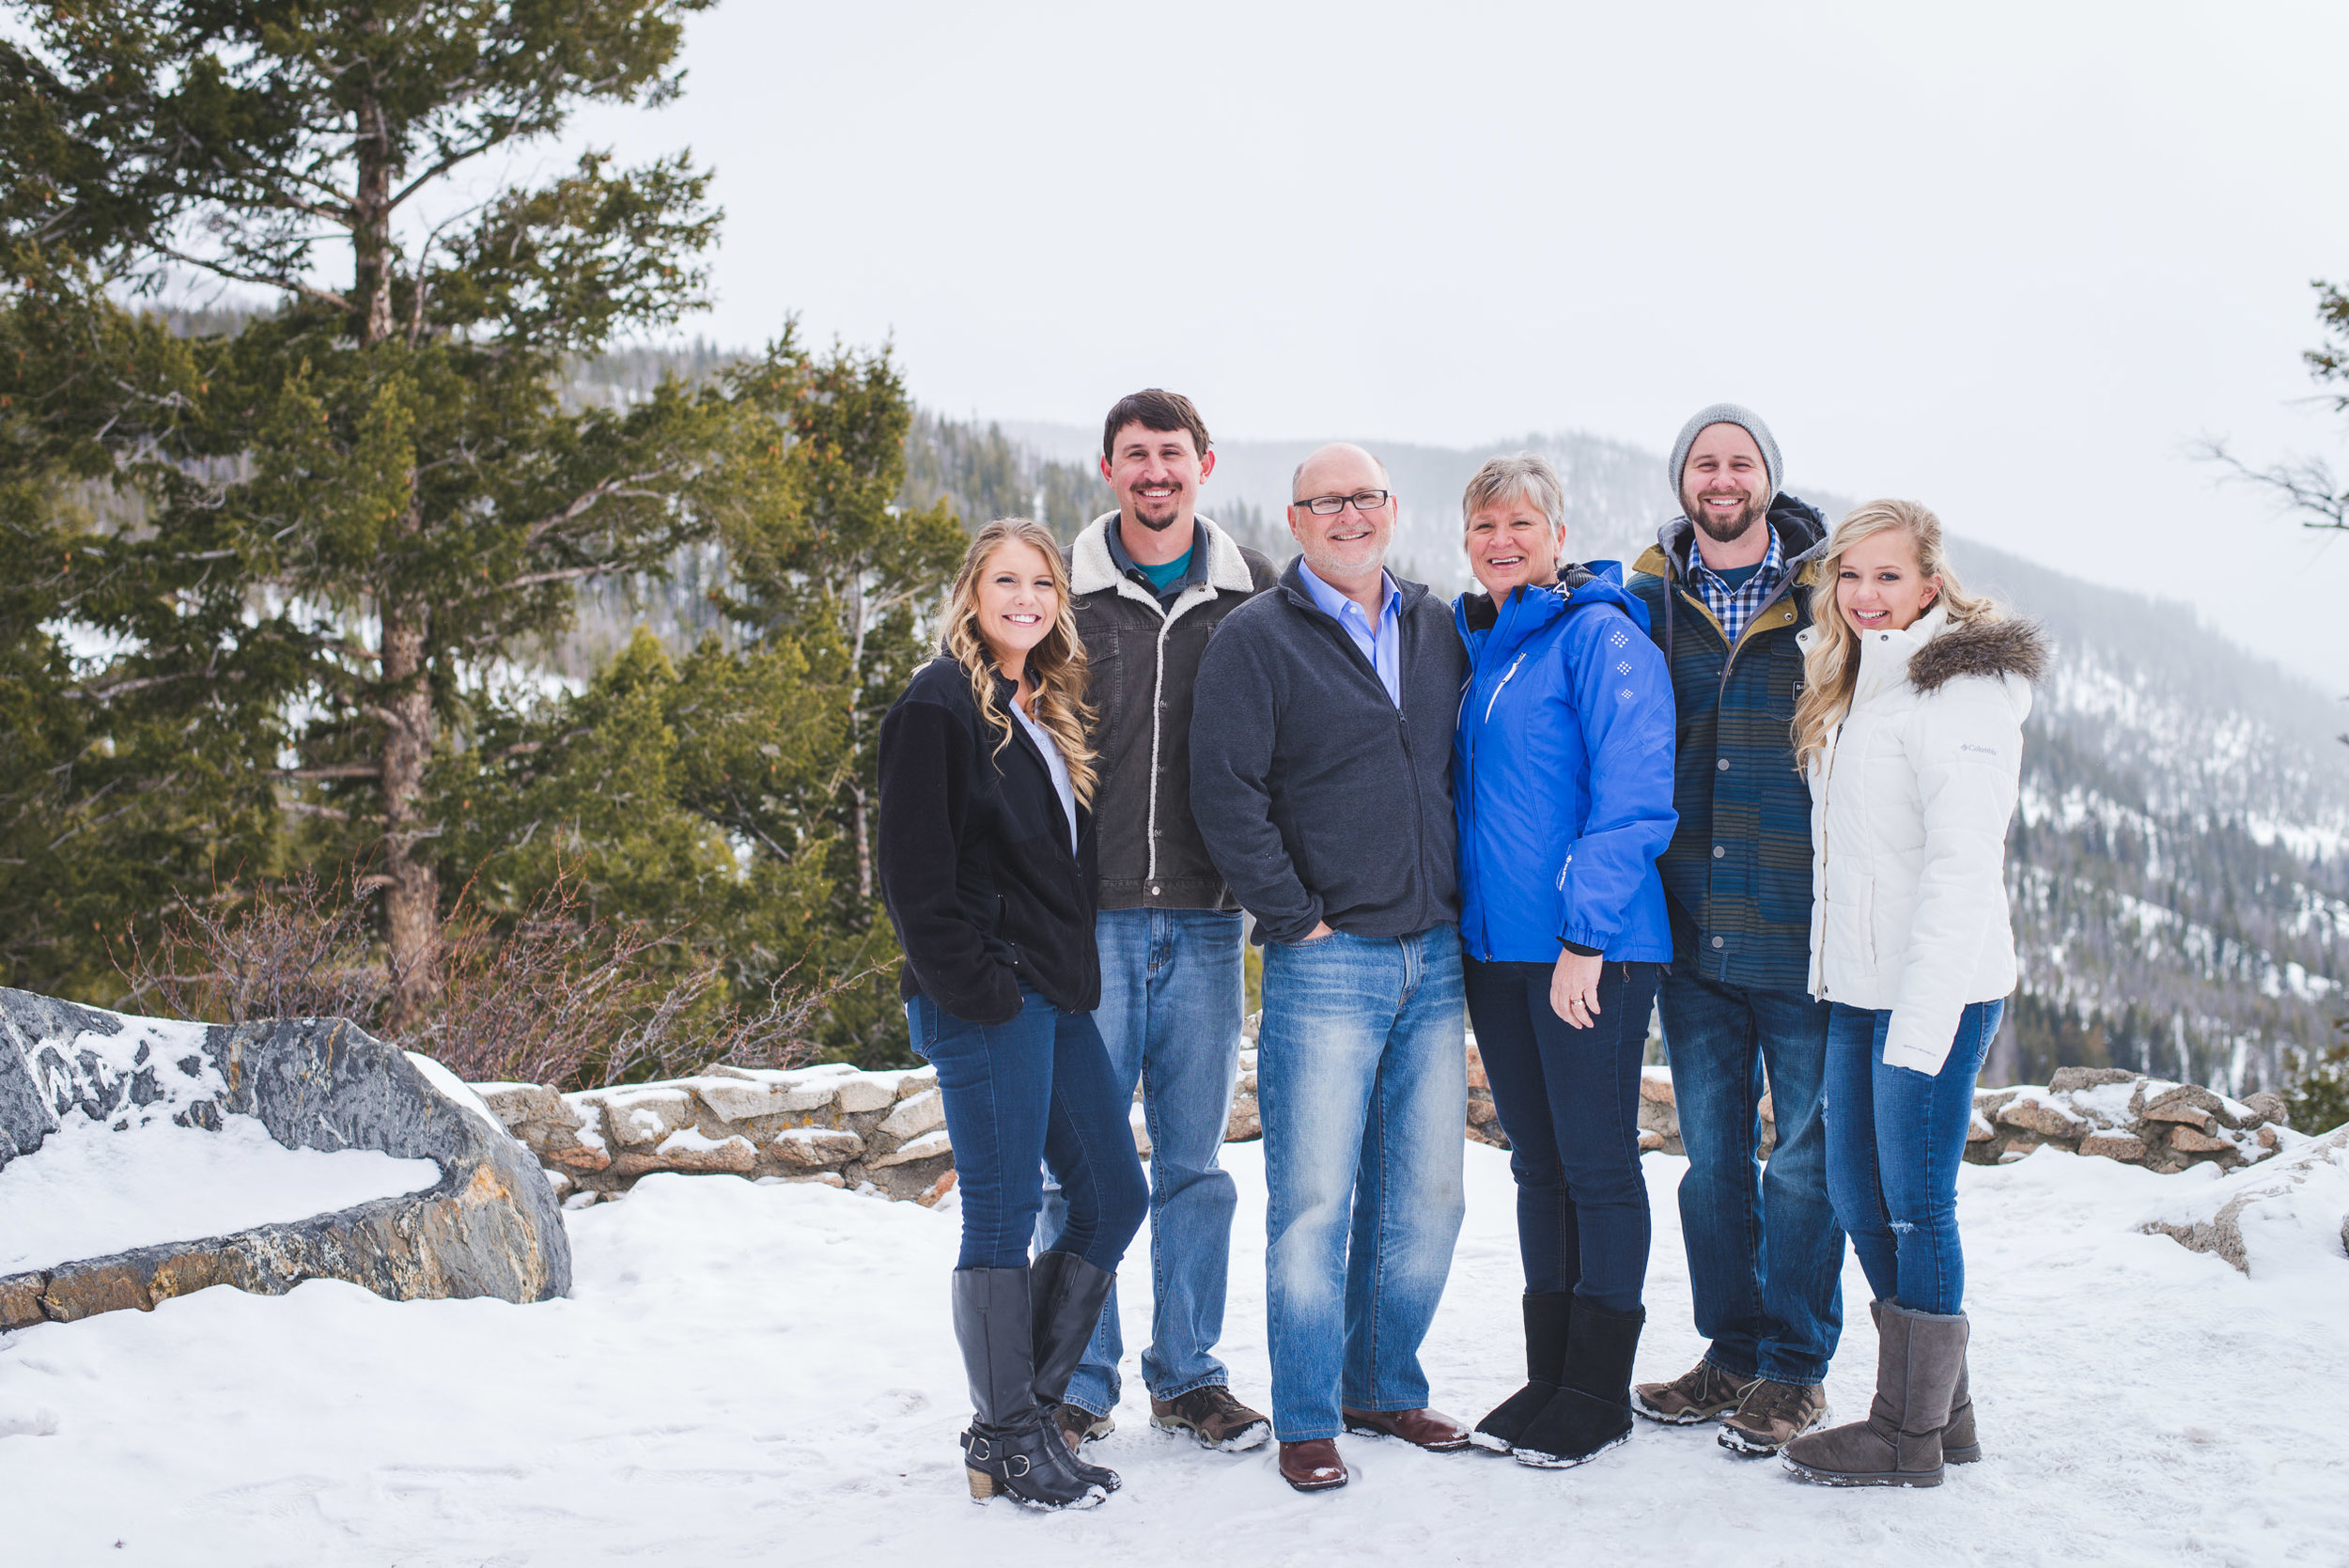 Surprise winter proposal at Sapphire Point in the Colorado mountains during a destination family photo shoot. | Keeping Composure Photography